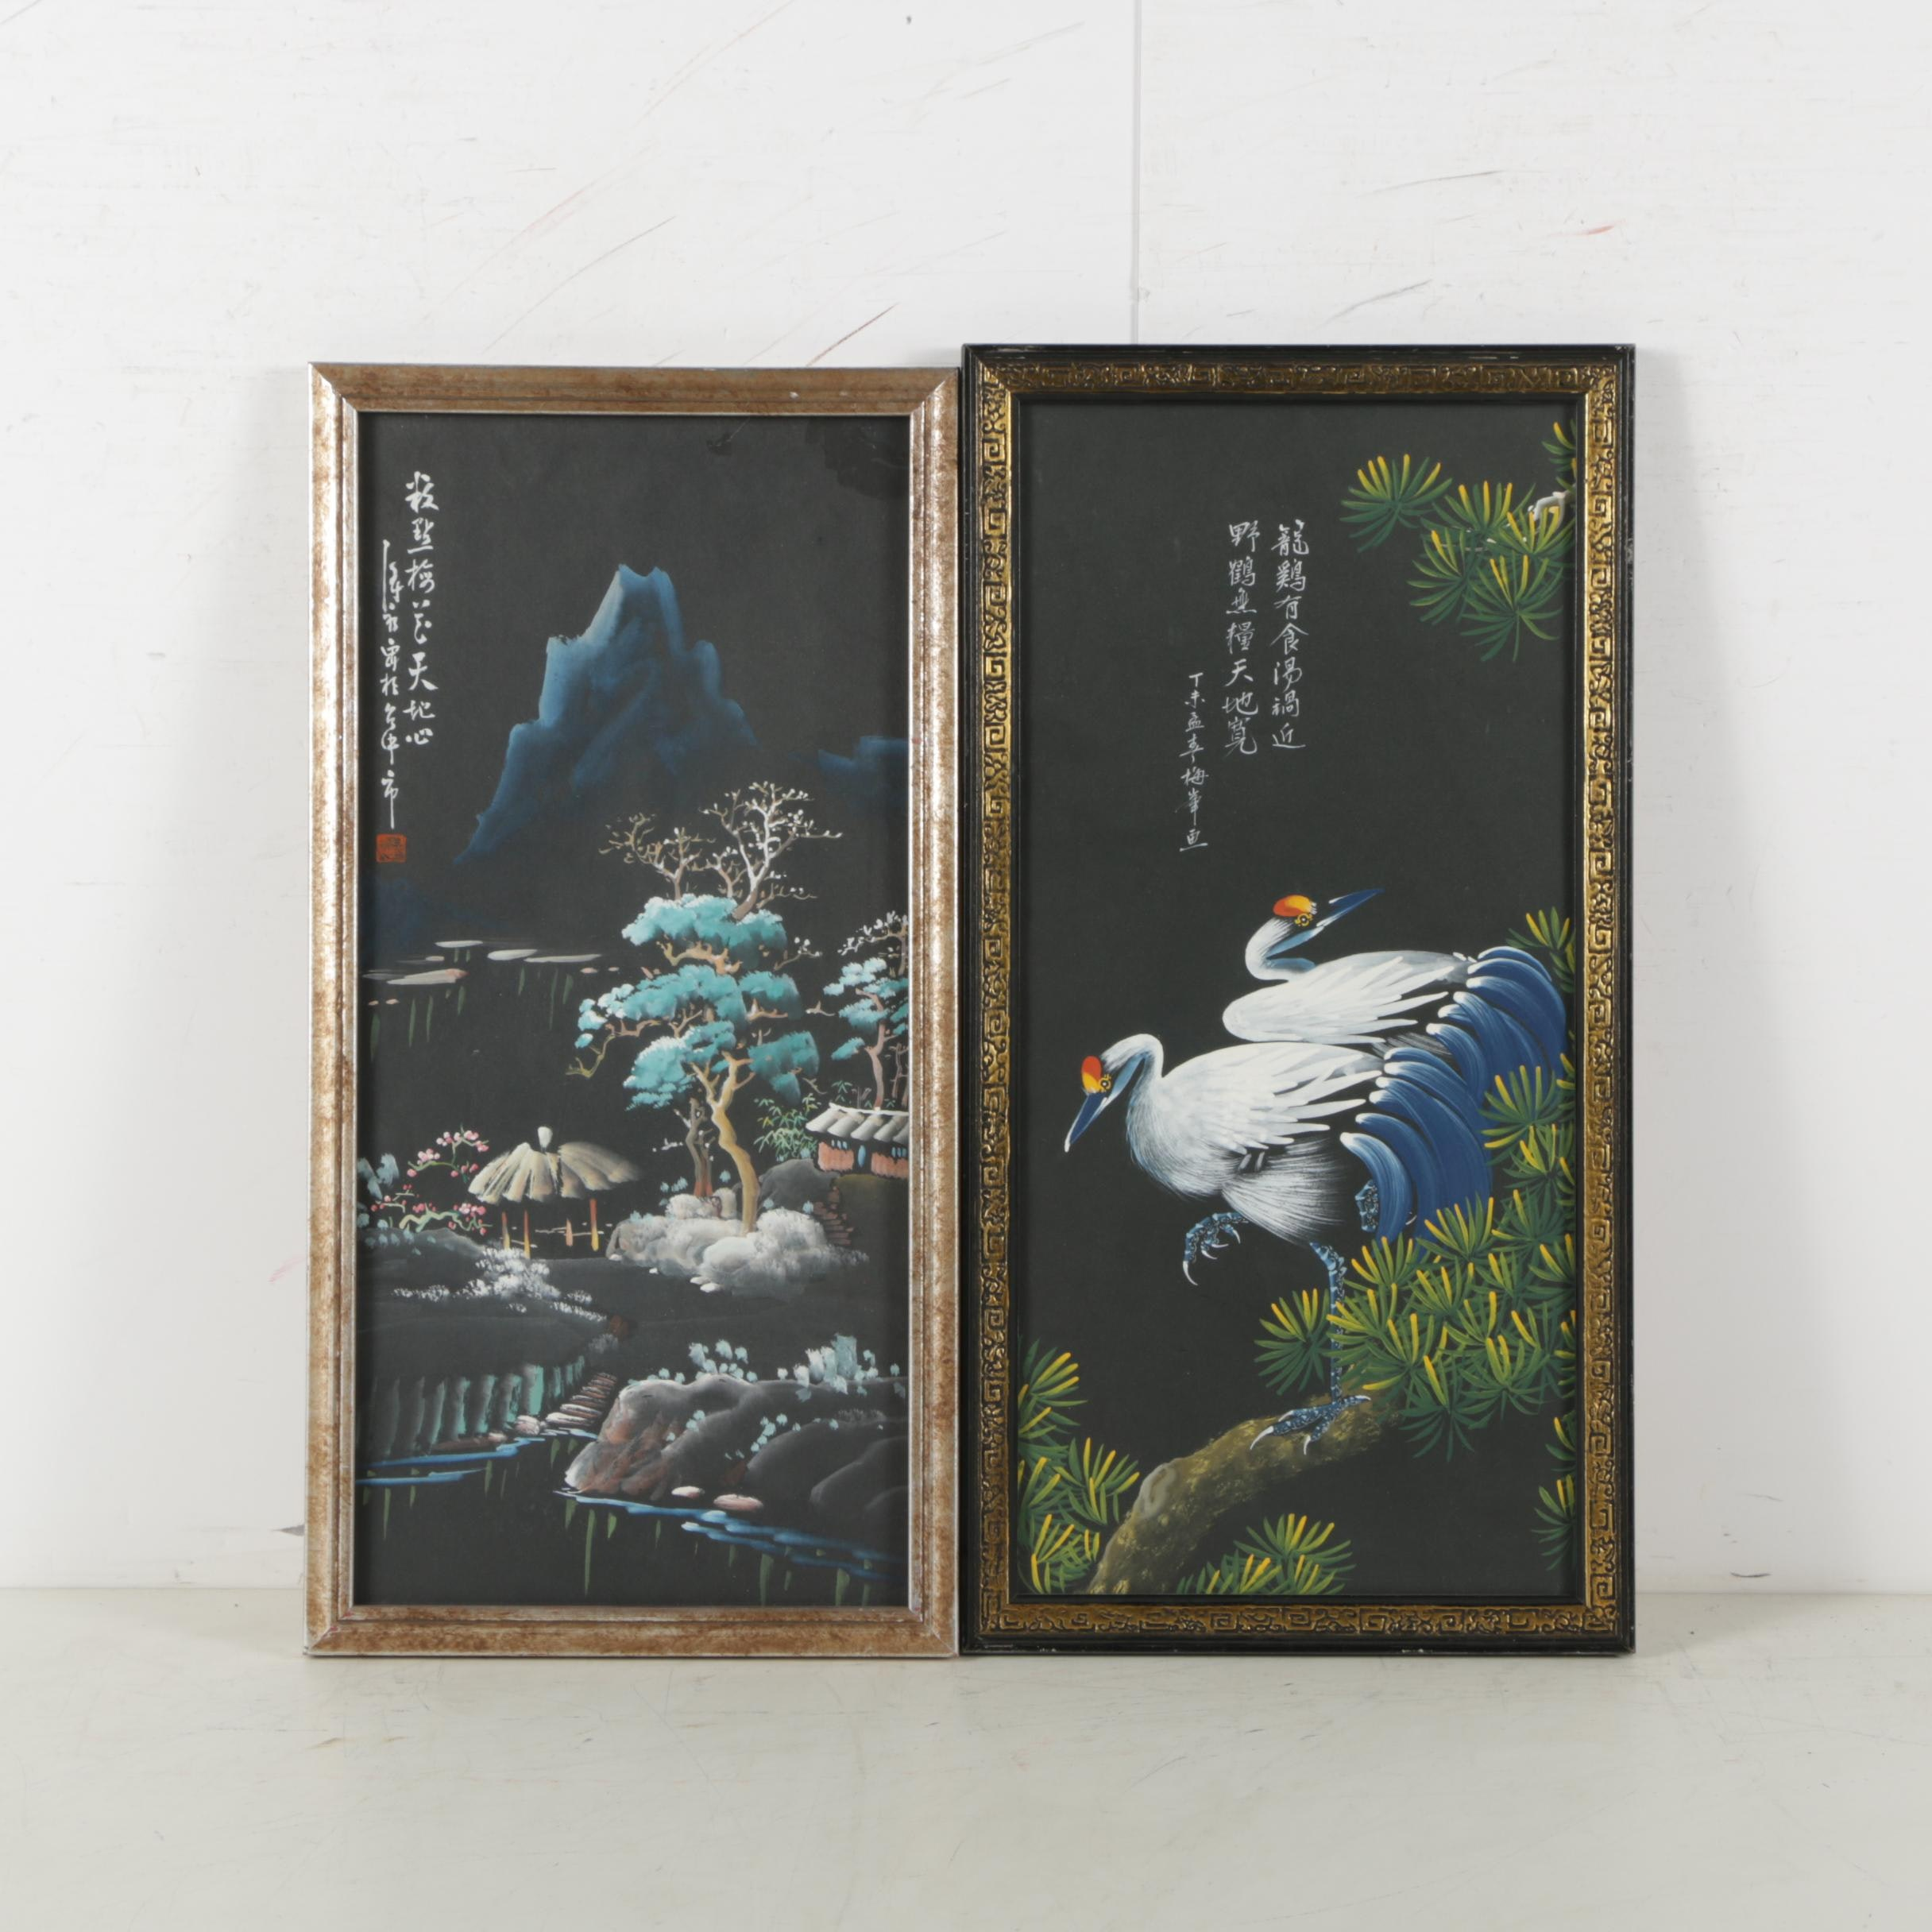 Chinese Style Gouache Paintings of Cranes and Landscape